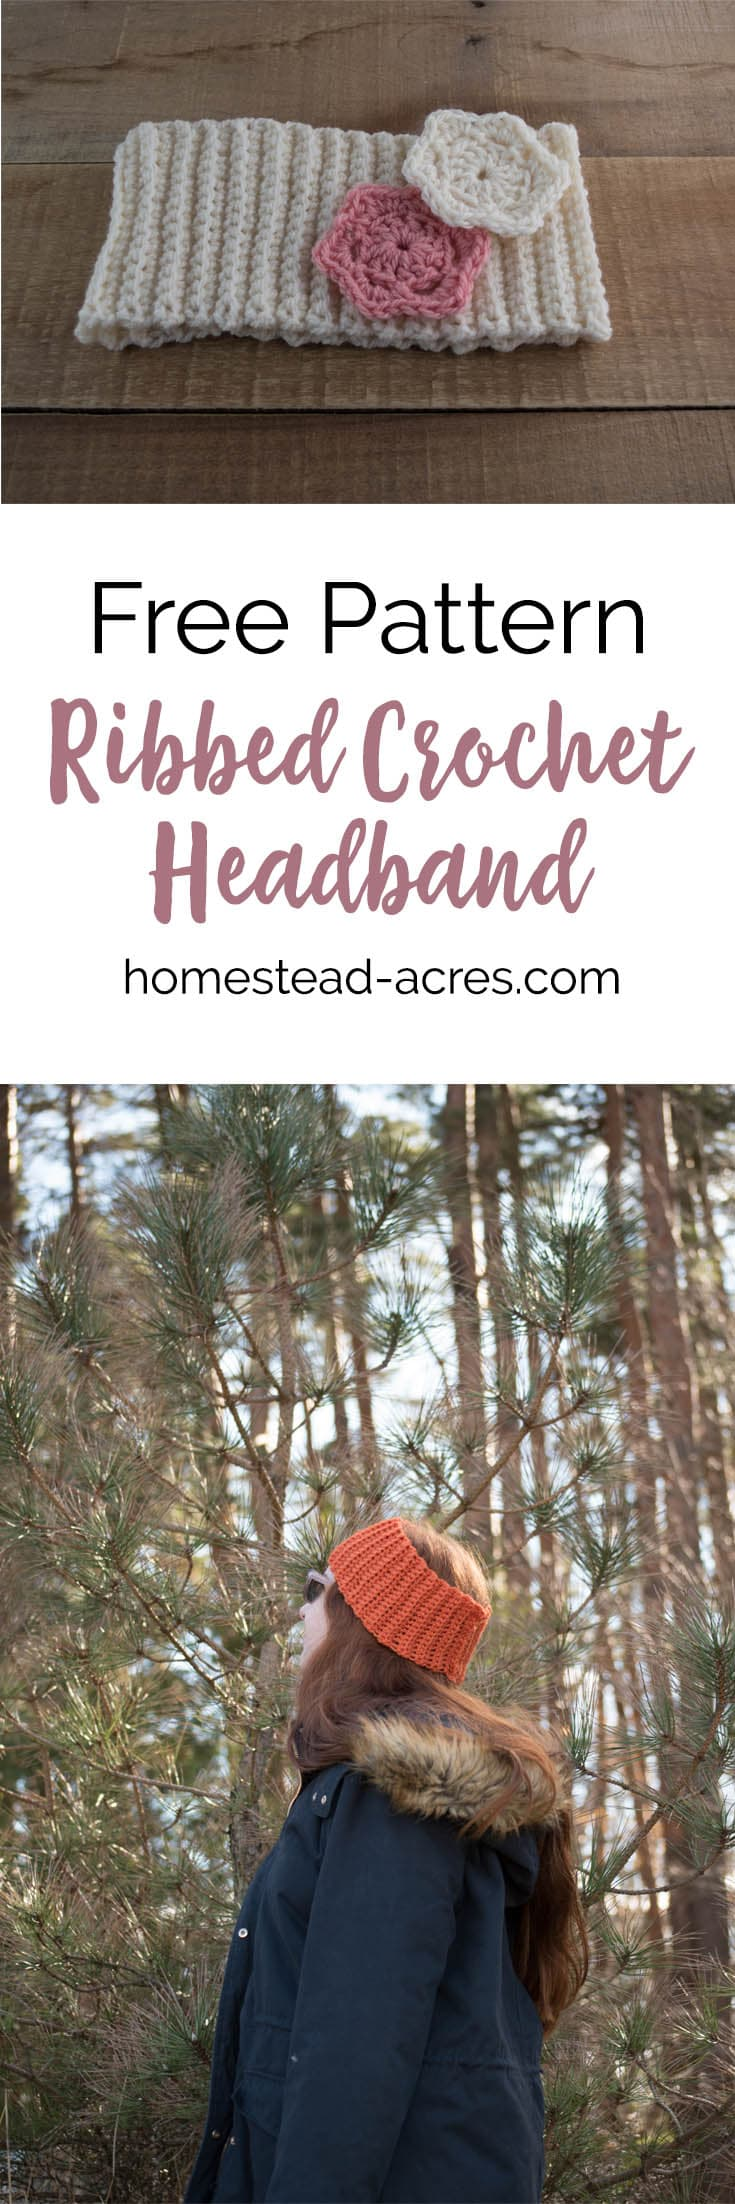 Ribbed crochet headband pattern in sizes baby to women's. This easy crochet headband pattern is perfect for beginners. It works up so quick and easy! Decorate it with buttons or flowers. #Crochet #Crochetpattern